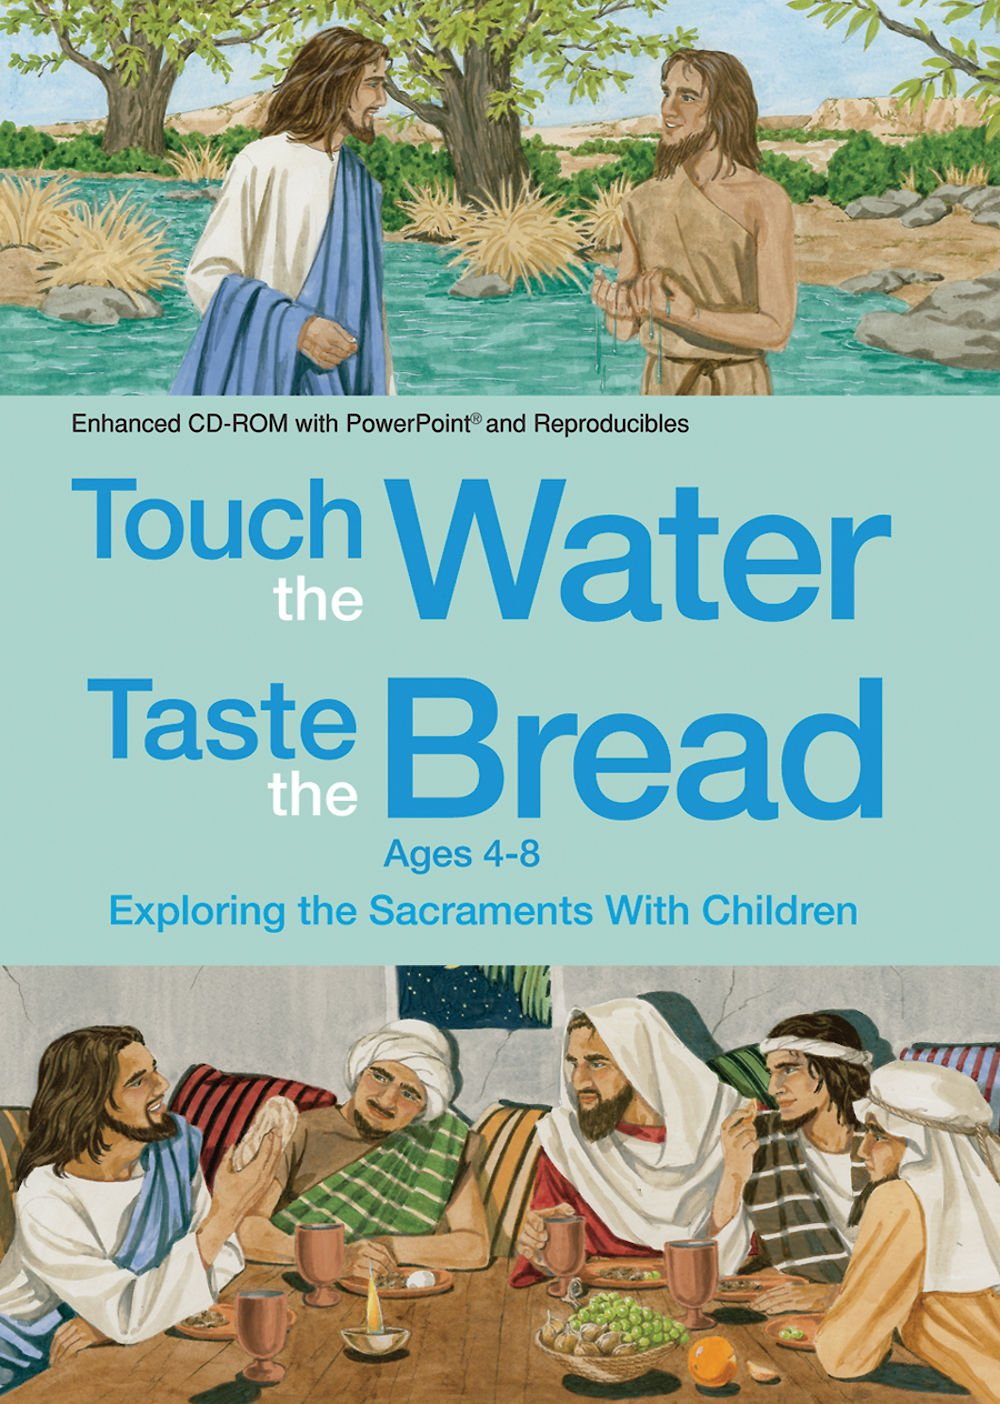 Touch the Water, Taste the Bread Ages 4-8 (CD-ROM): Exploring the Sacraments with Children pdf epub